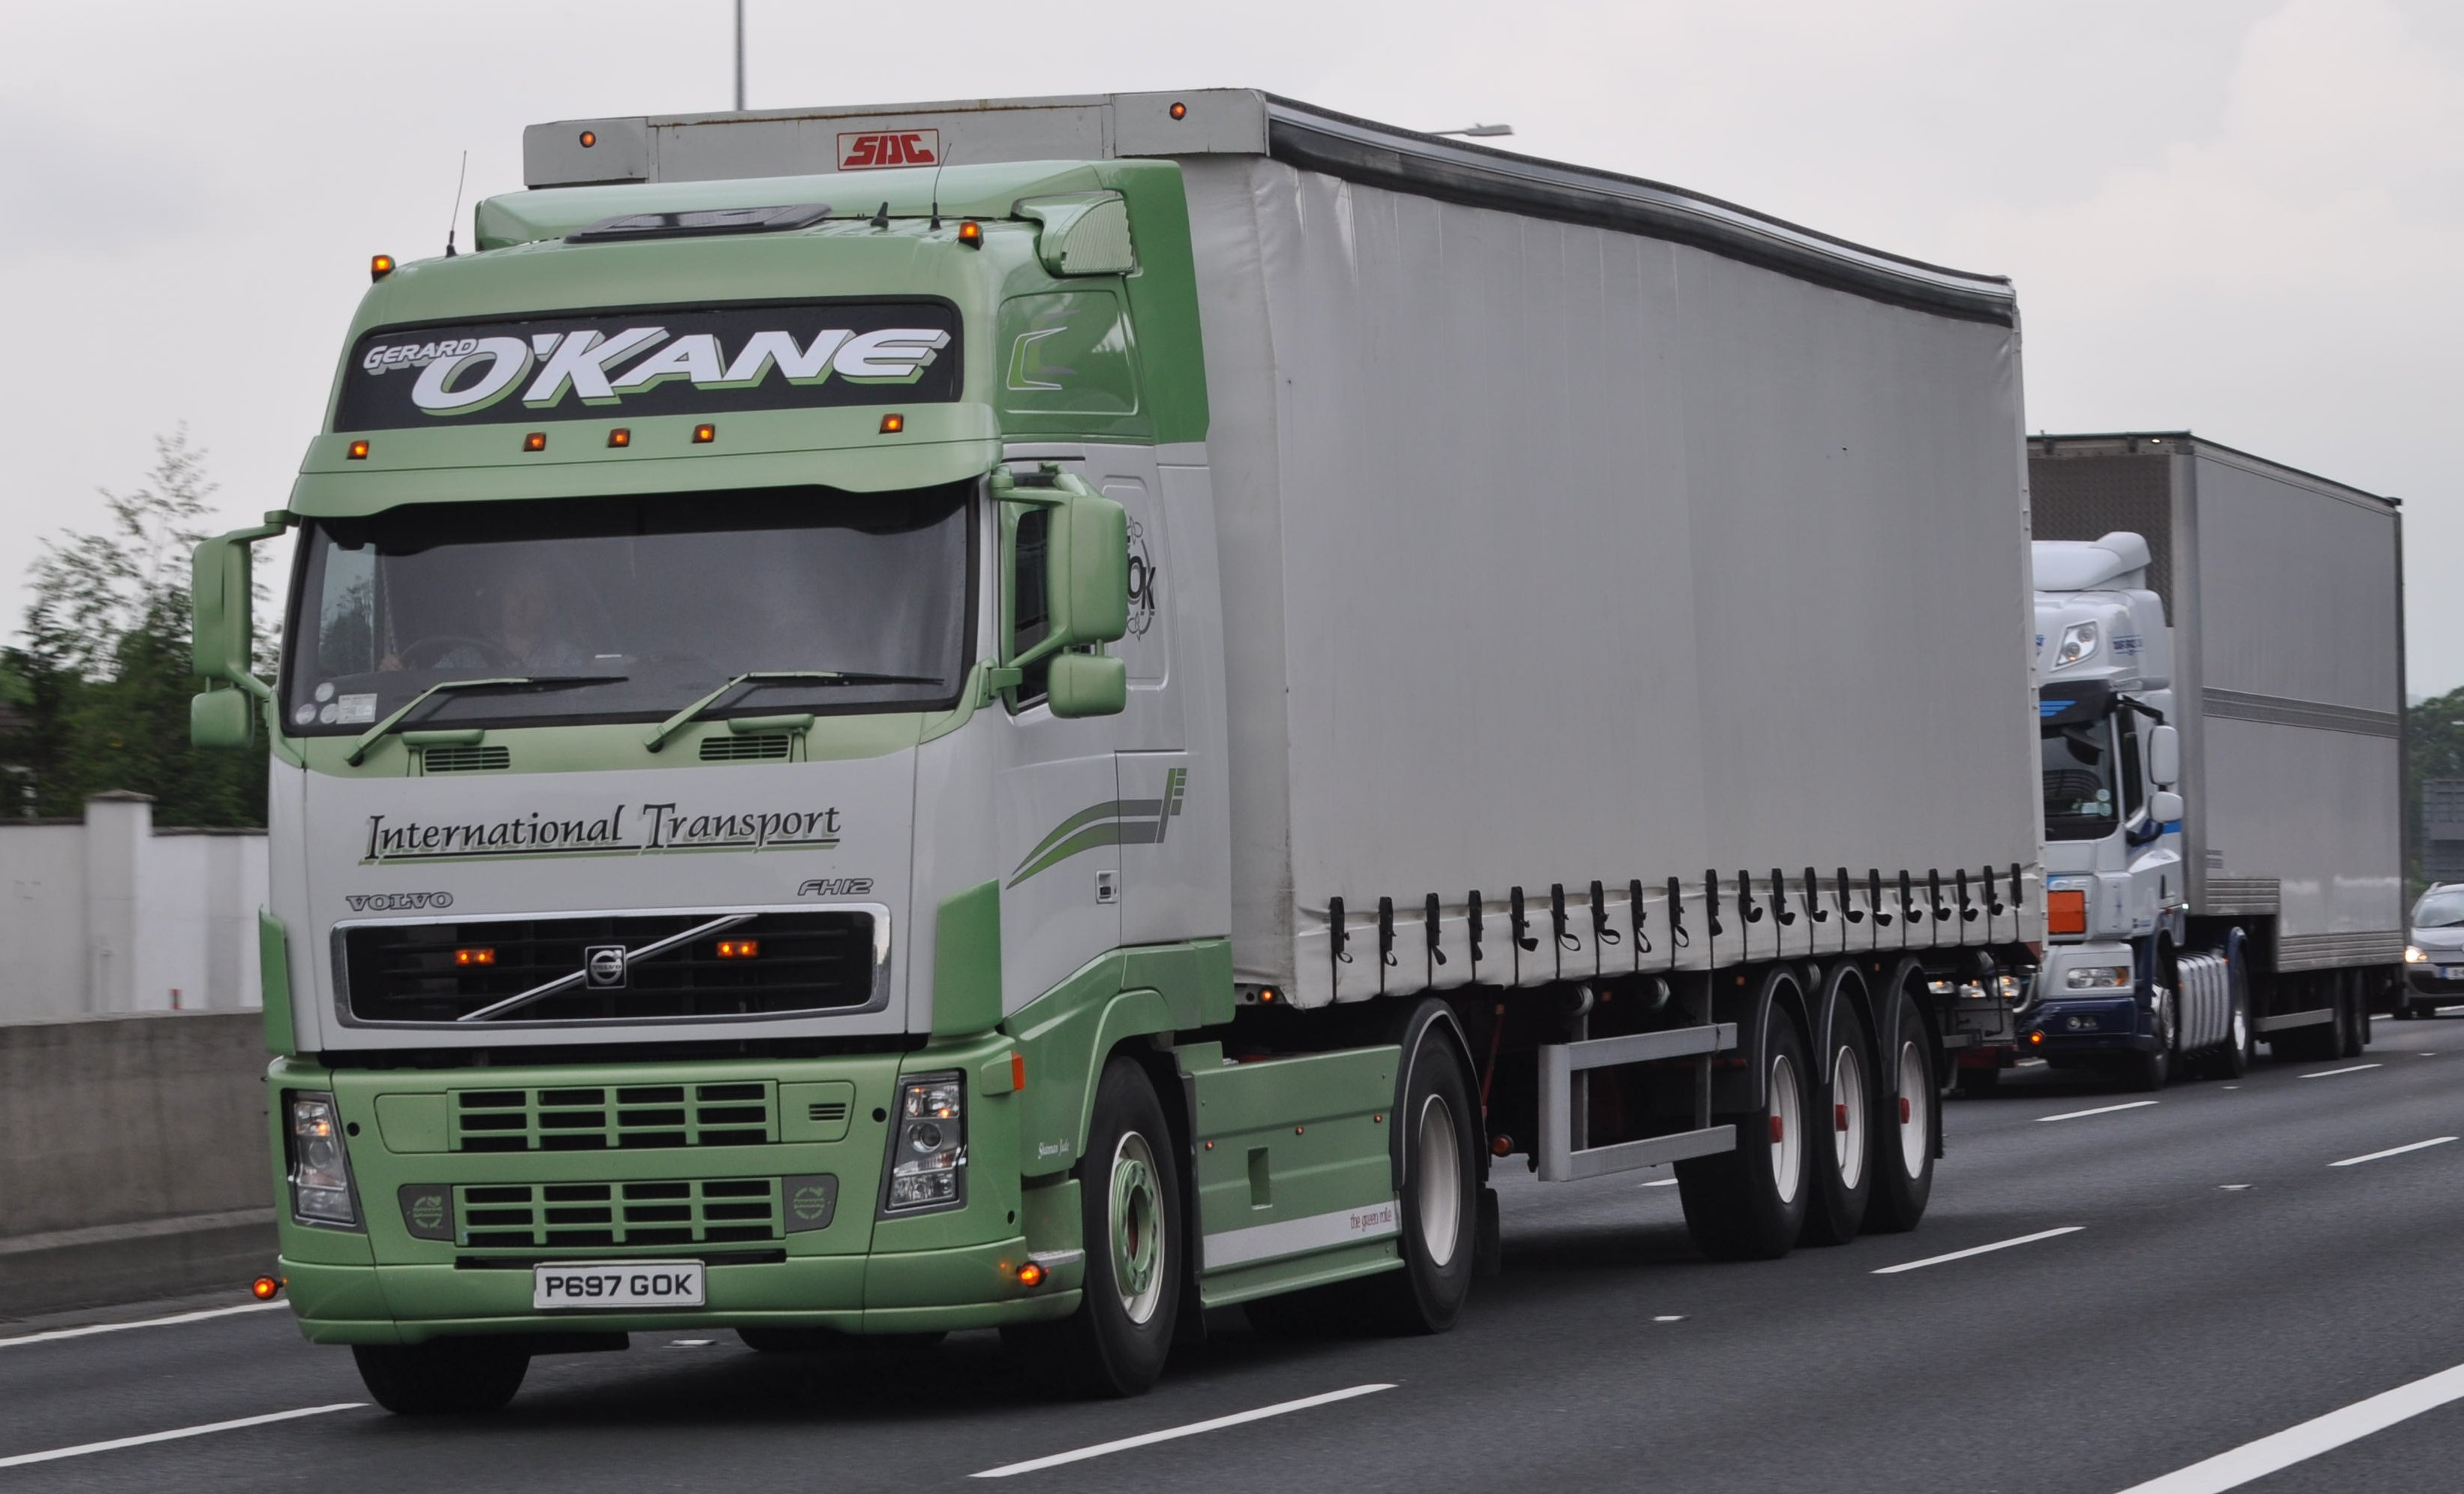 File:Gerard OKane Transport International - at Liffey ...